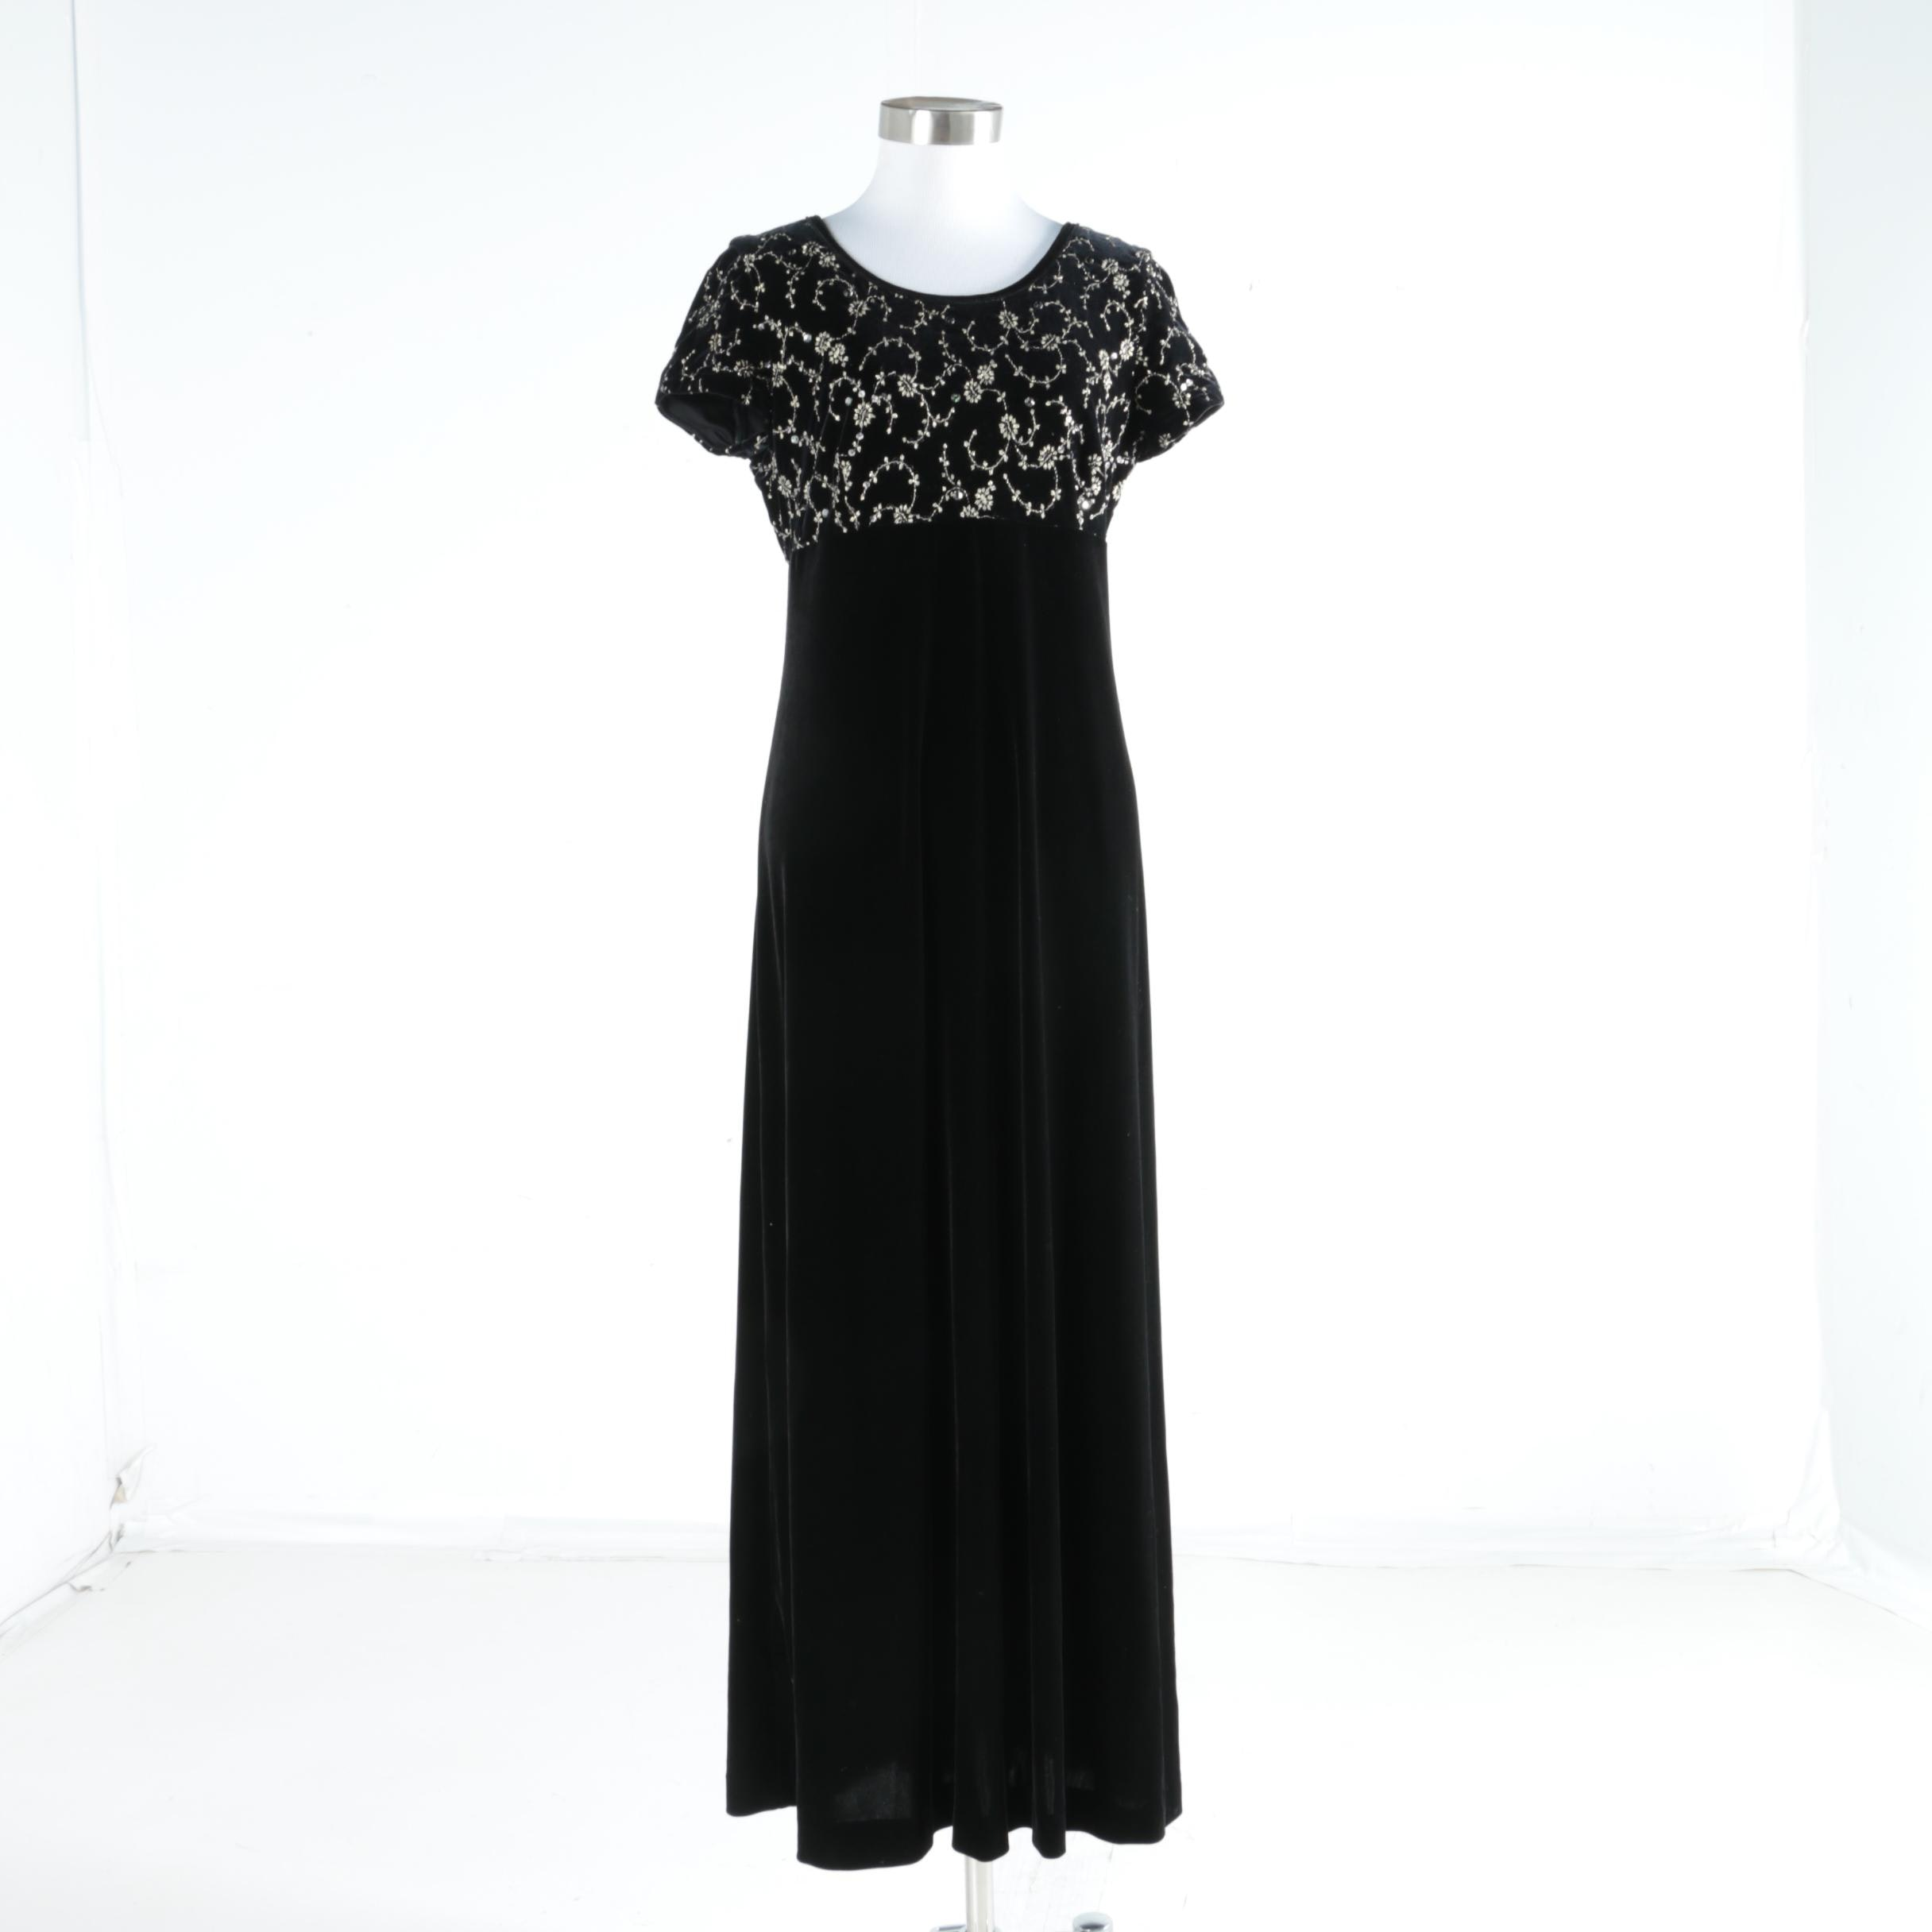 Coffield & Co Embroidered Black Dress